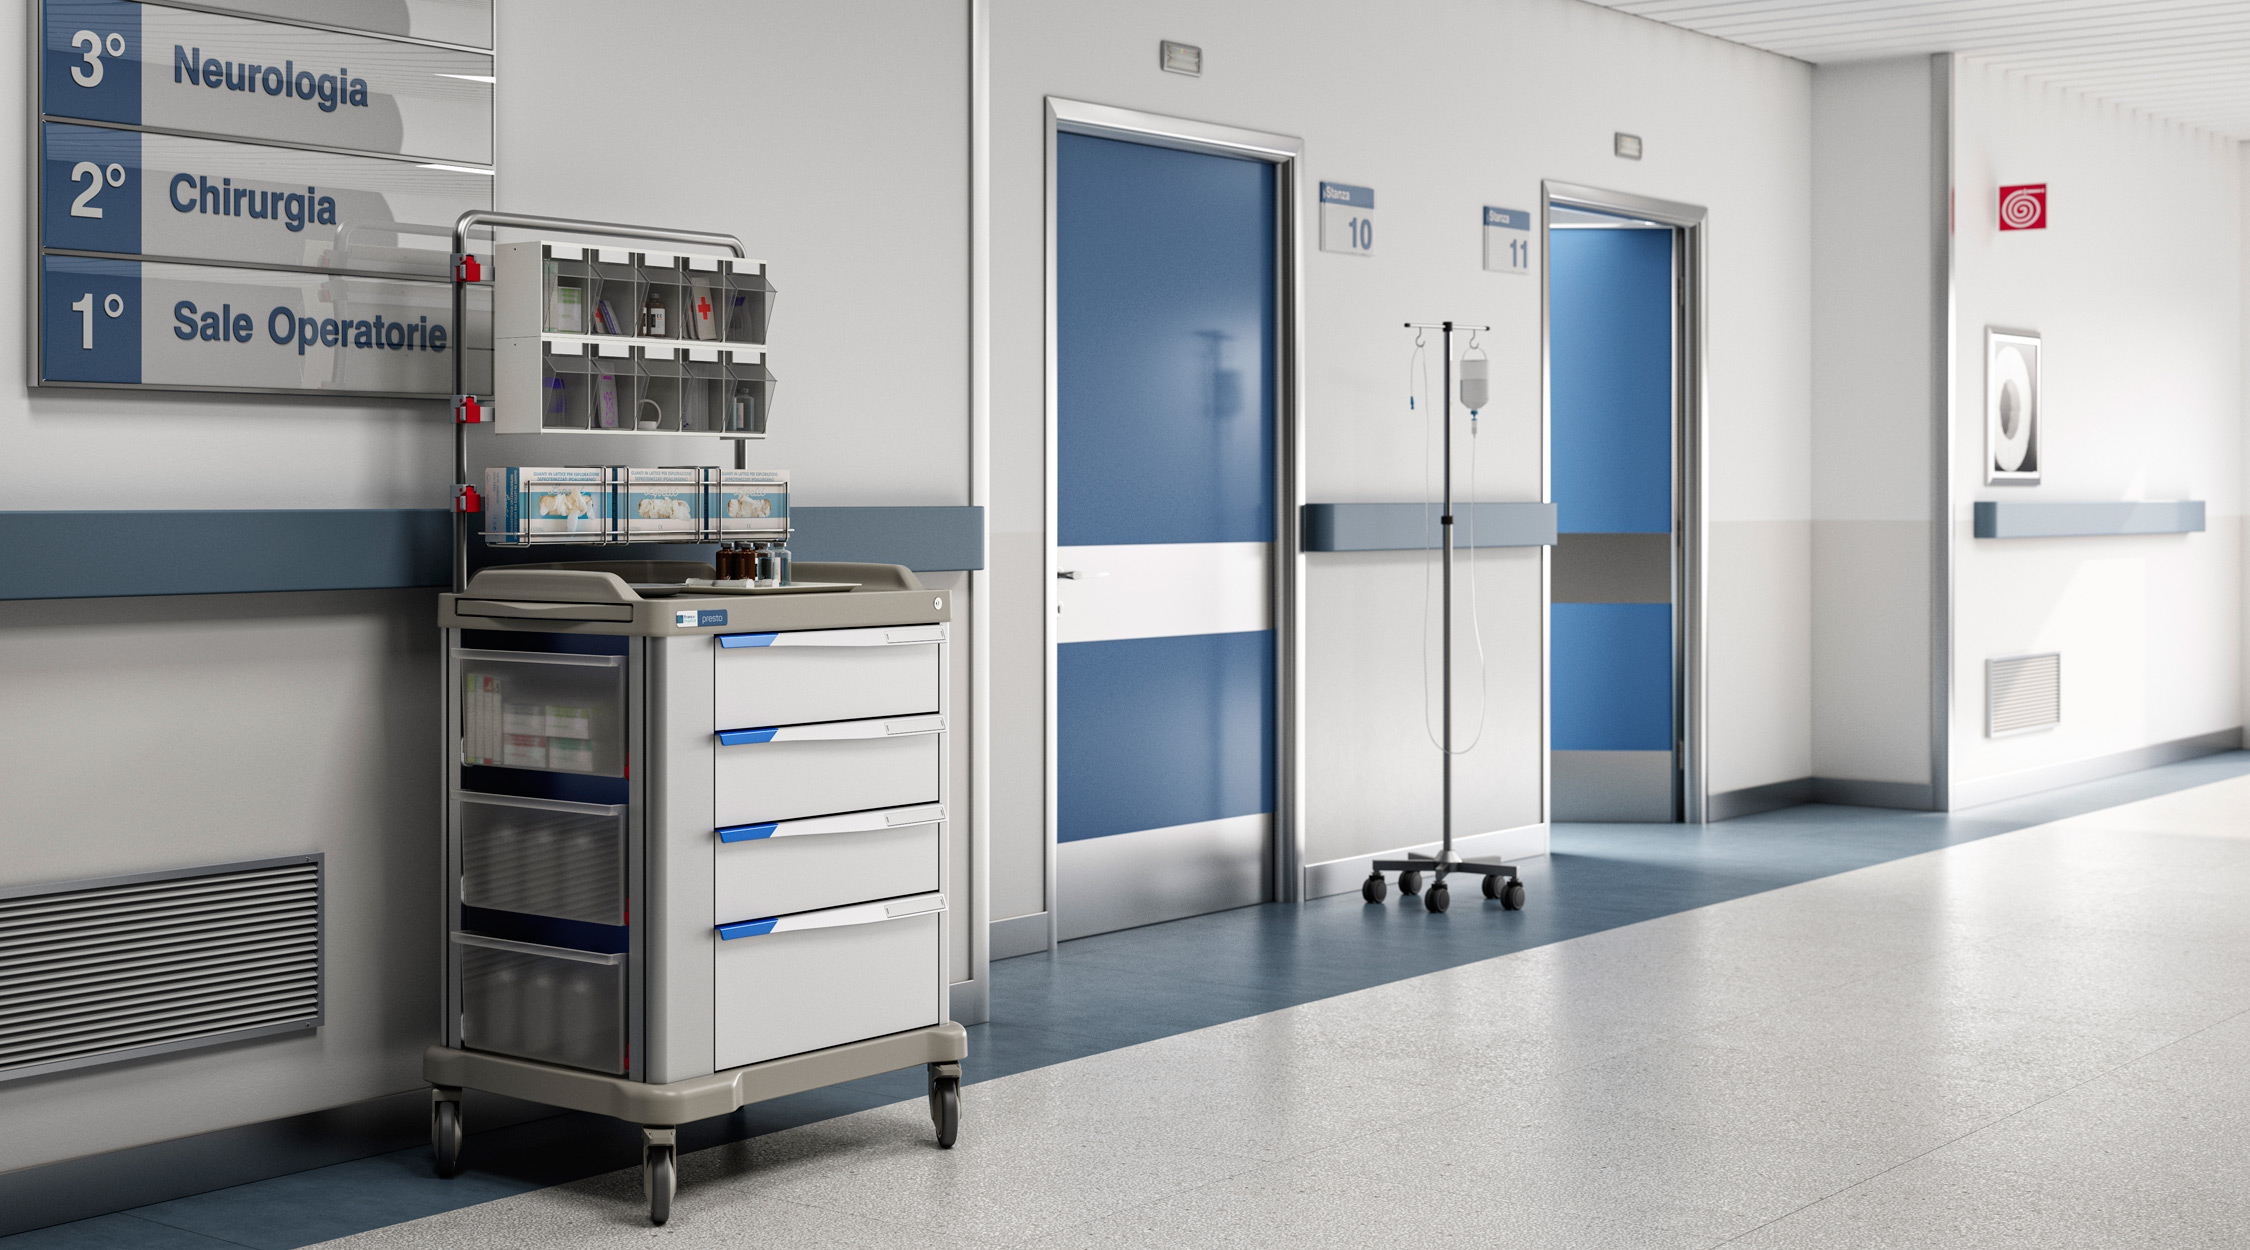 Presto large therapy trolley in a hospital ward